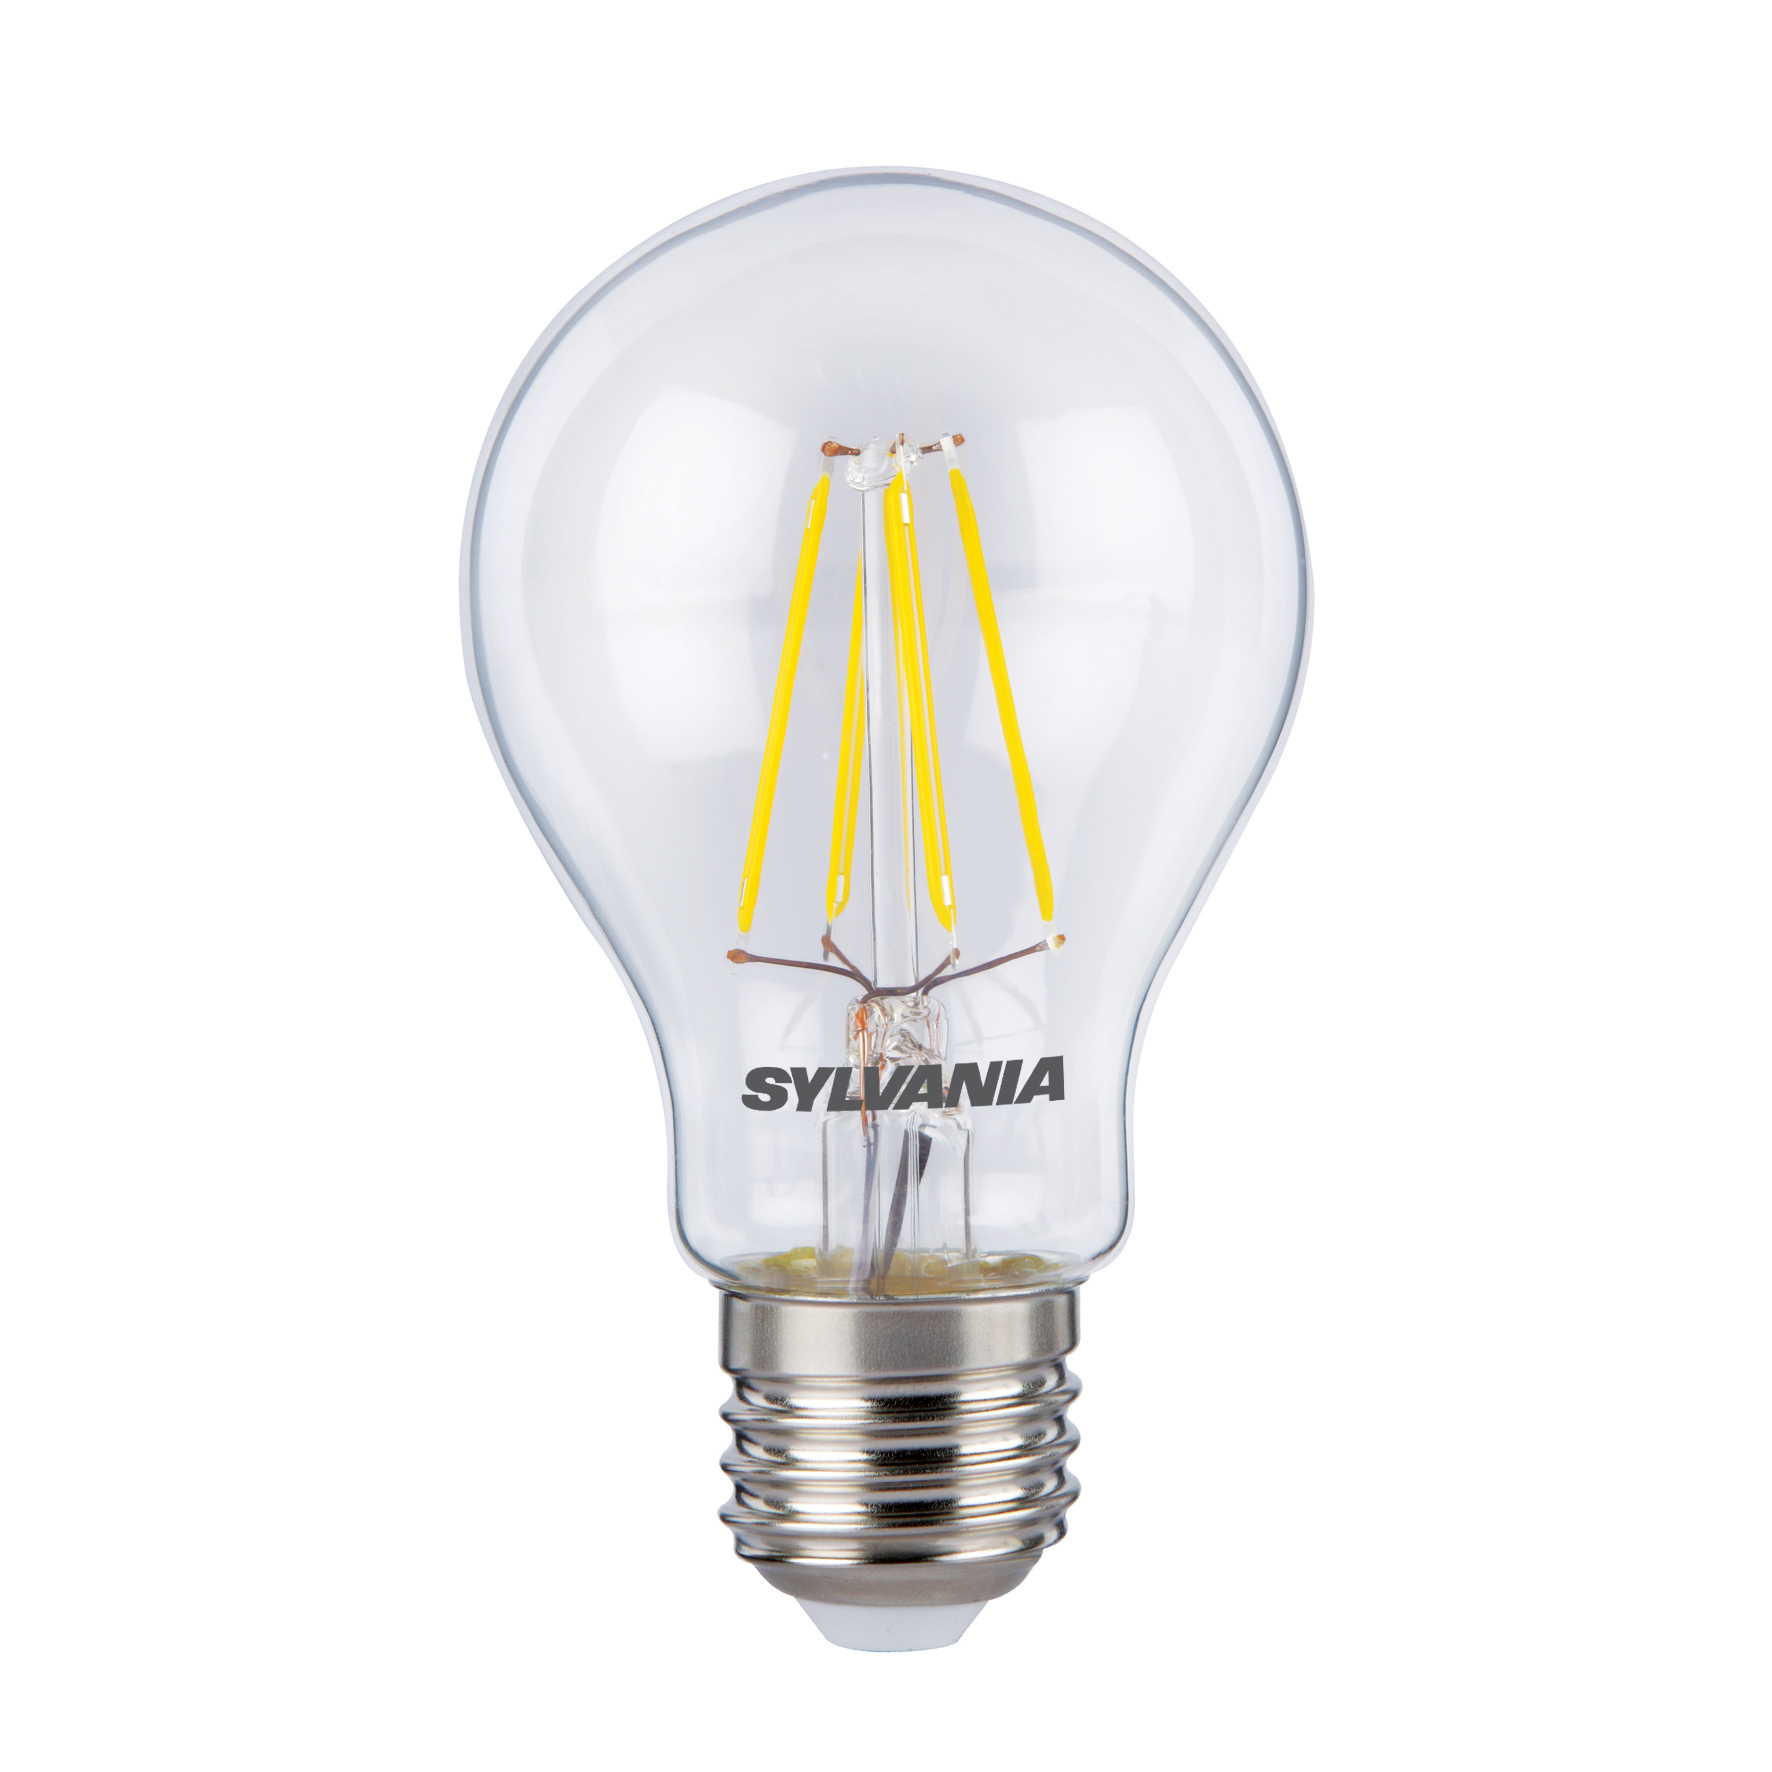 bulb walmart bulbs life mini canada en sylvania lighting long light ip rev